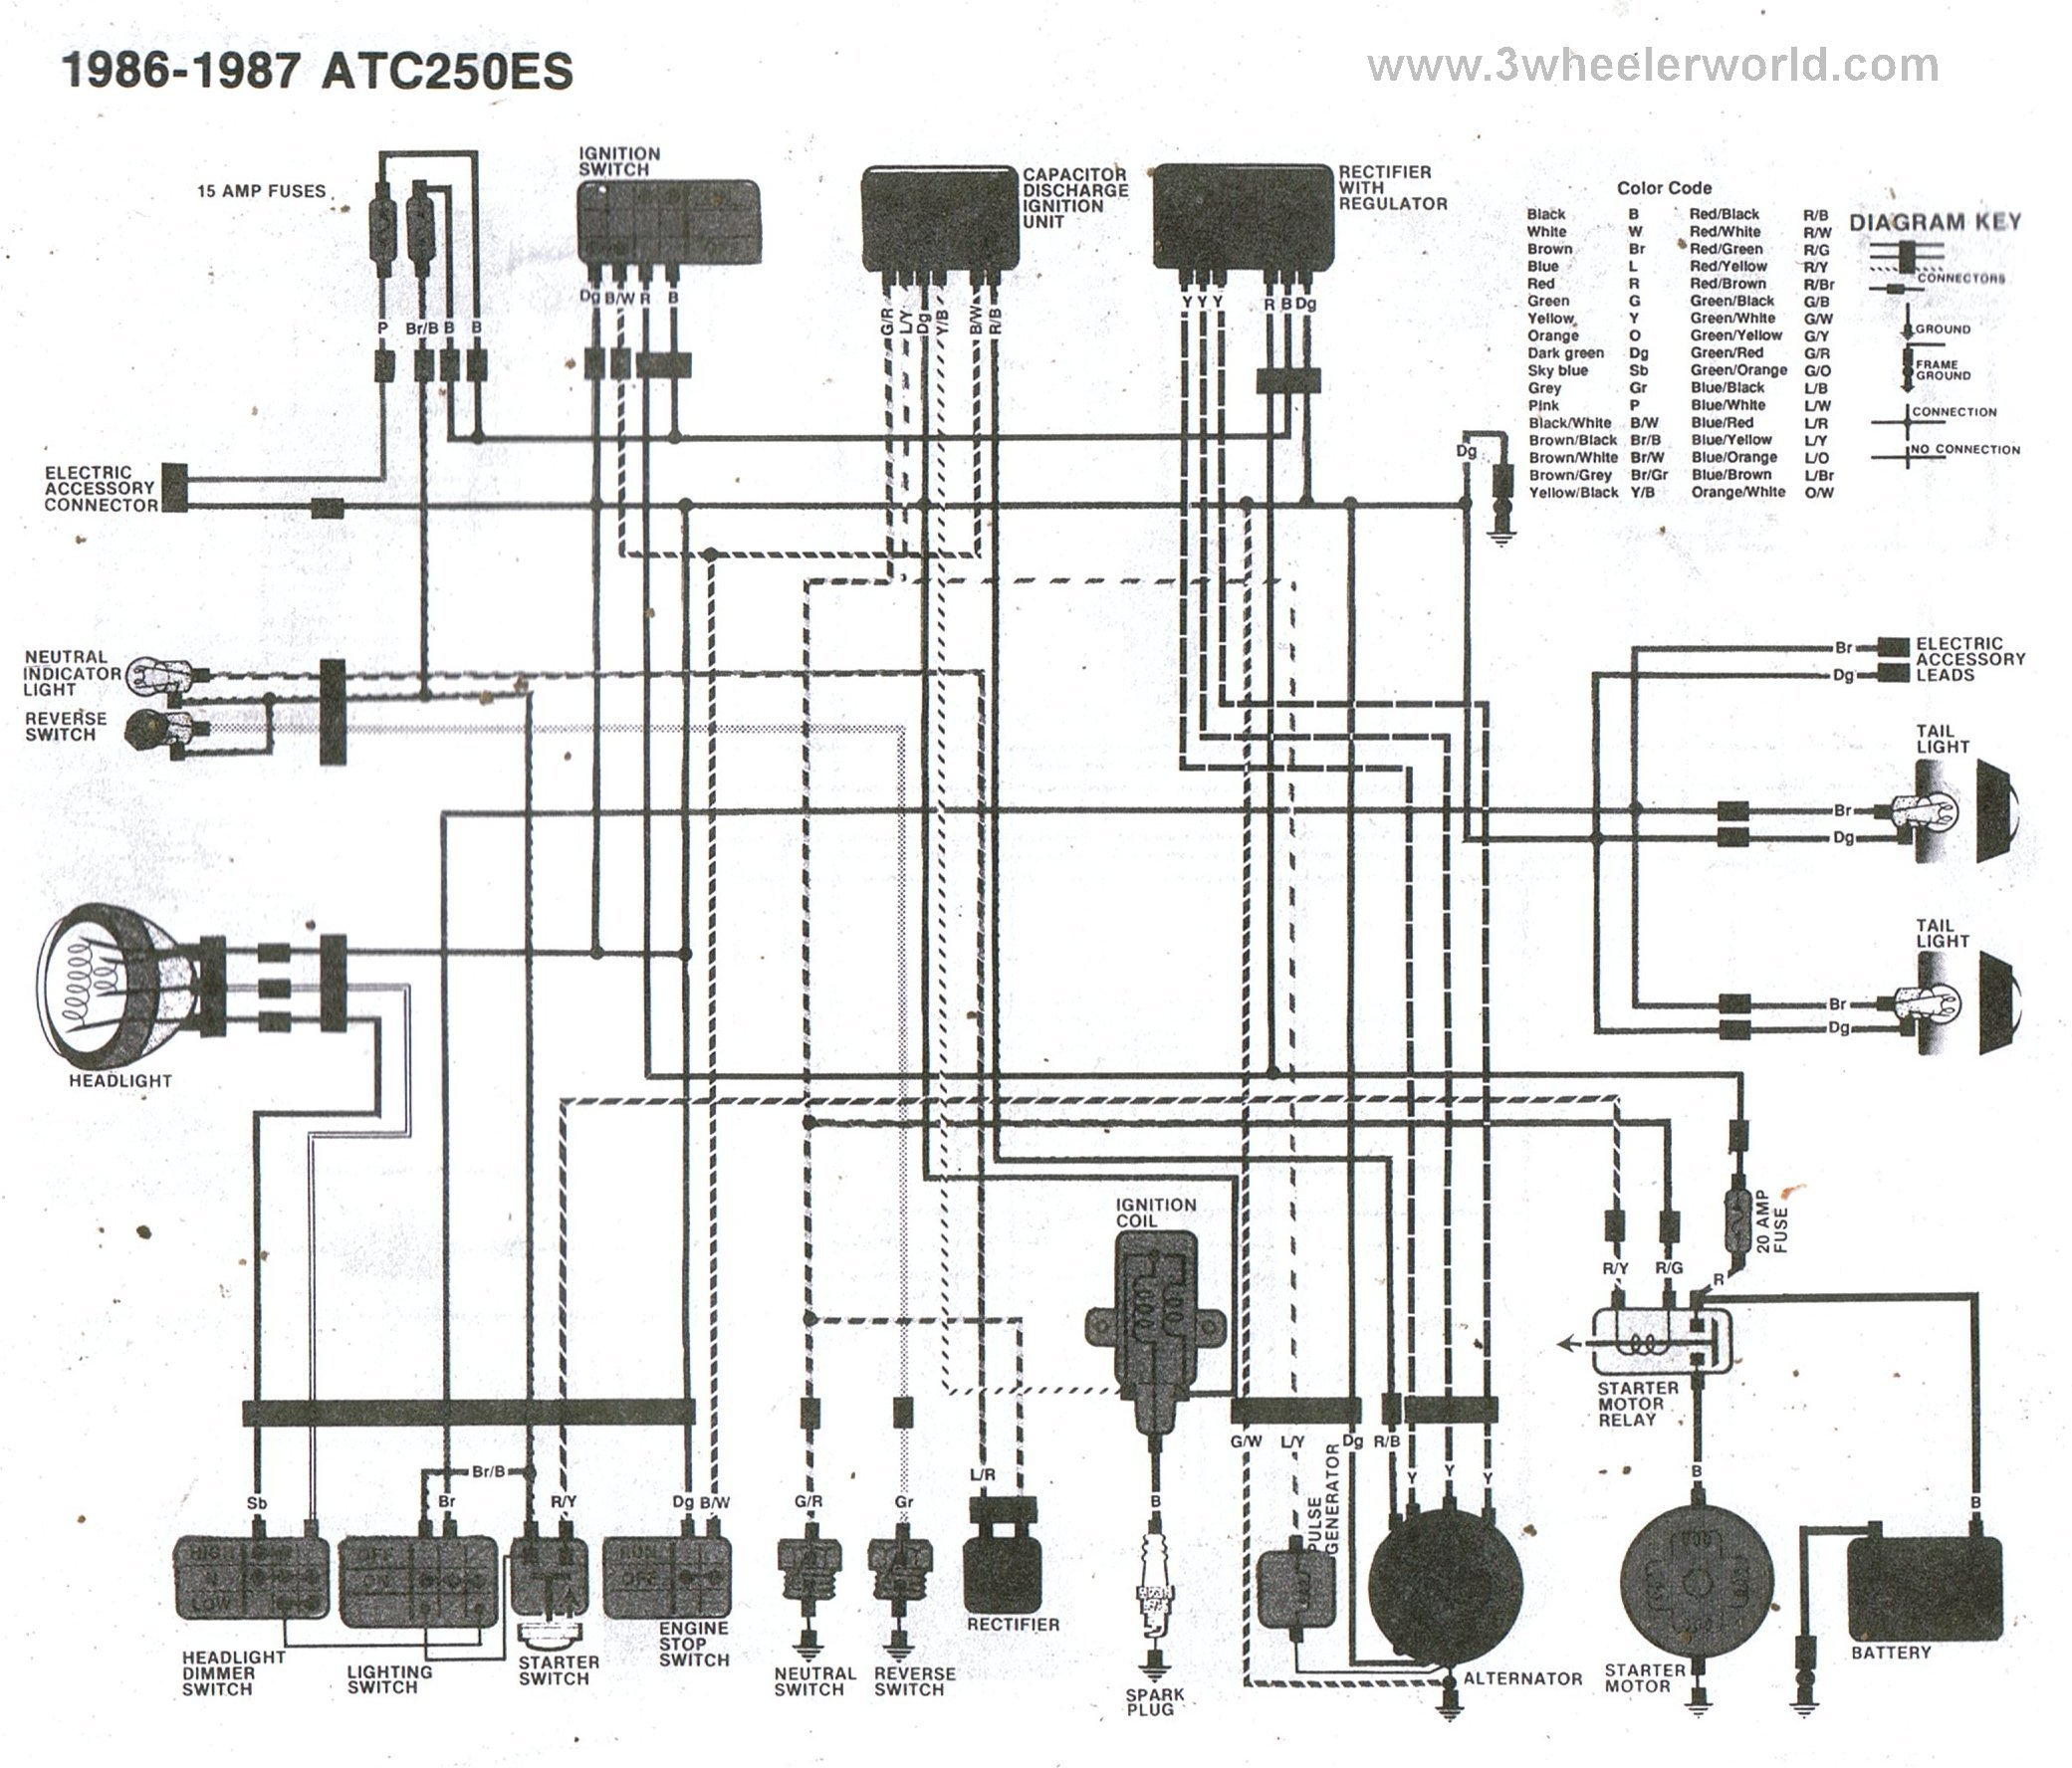 Yamaha 350 Warrior Engine Diagram also 342641 Linhai 300 Atv 3 besides 188 Yamaha Wiring Diagram Section likewise 315131 85 Bayou 185 Wiring in addition Clipchoke Cable 90651ha0680. on kawasaki atv wiring diagram 1998 300